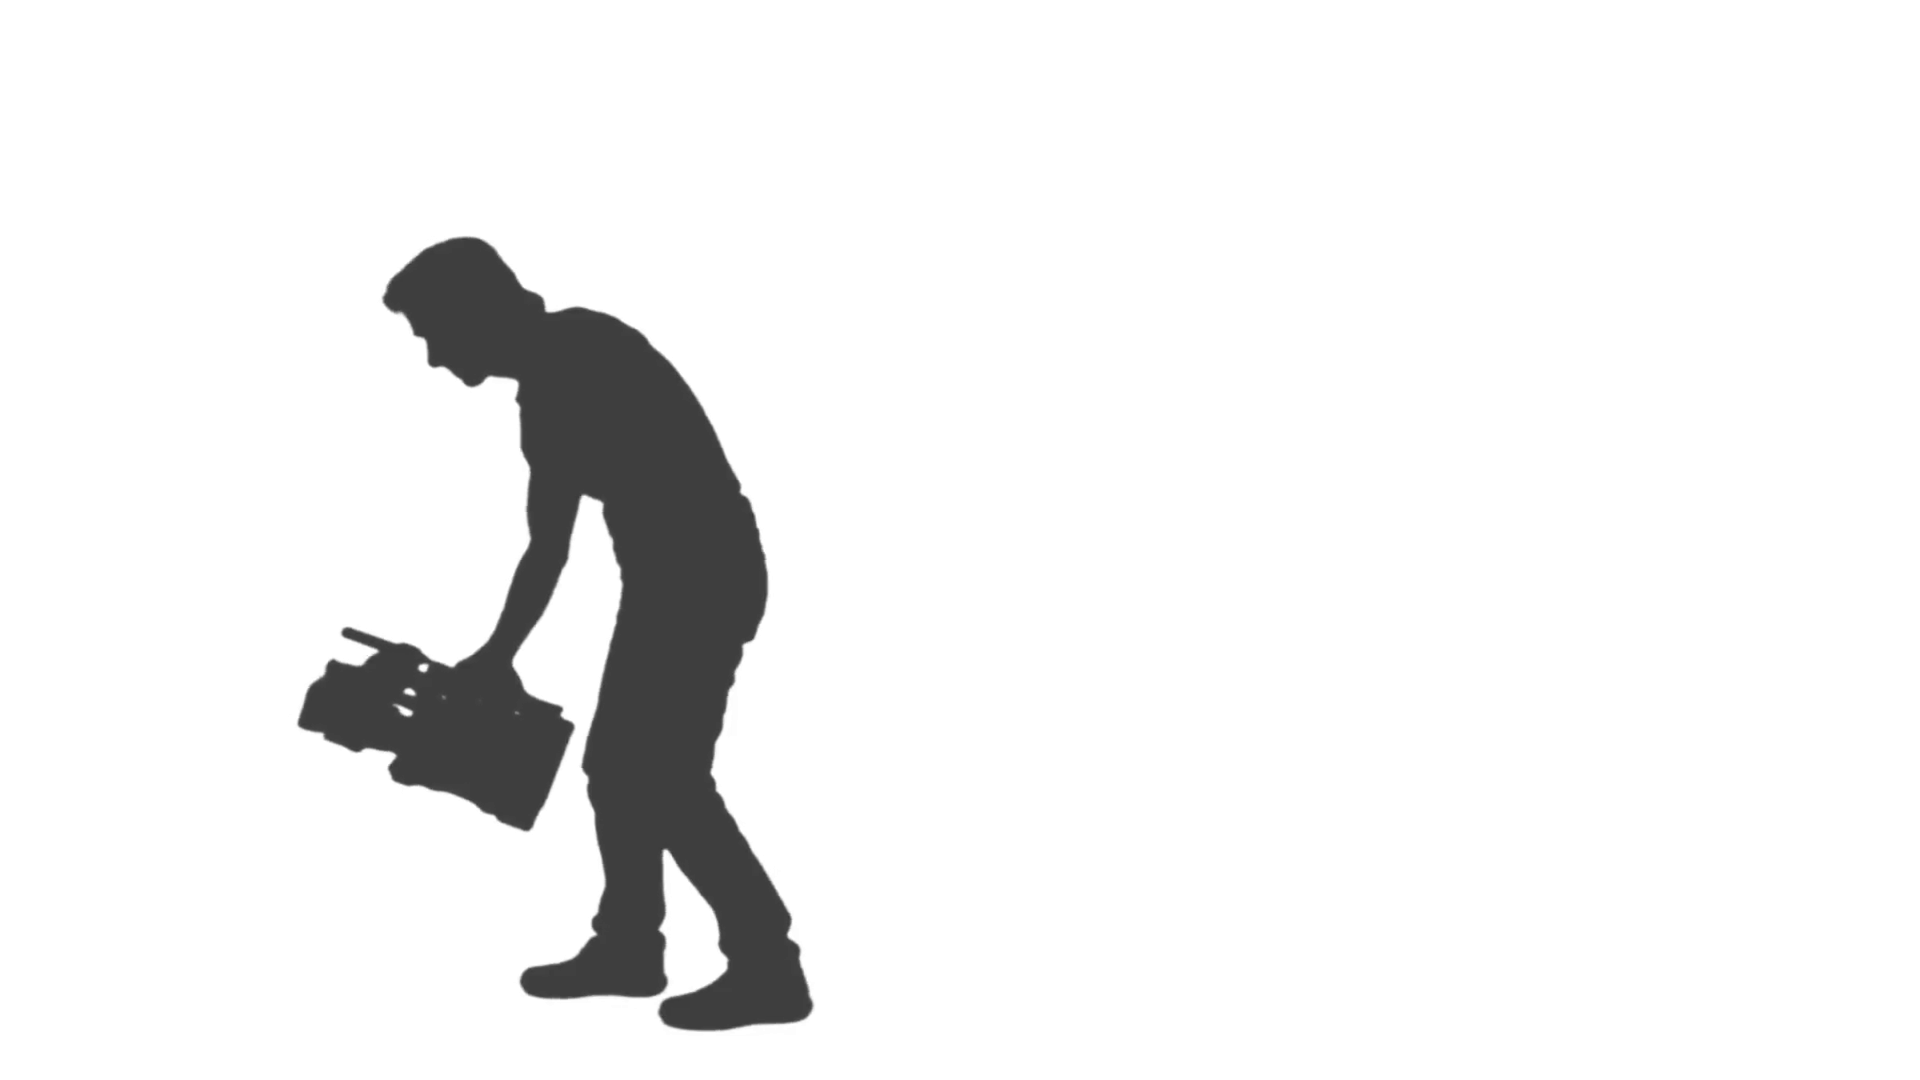 1920x1080 Silhouette Of Cameraman Walking With Camera And Shooting A Film